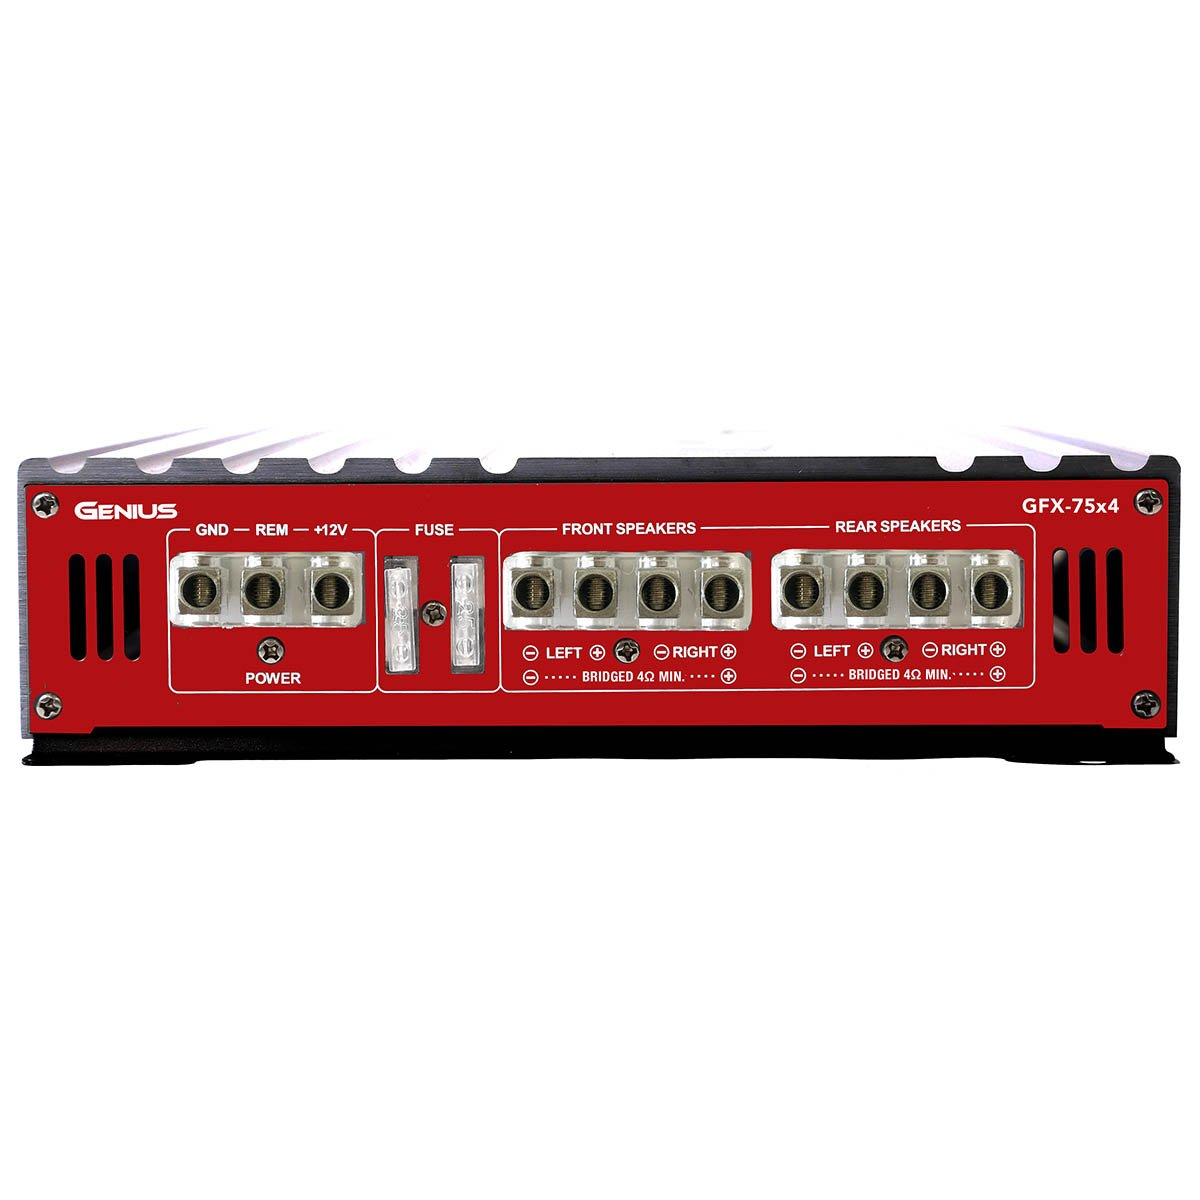 Genius GFX-75X4 1800 Watts-Max Car Amplifier 4-Channels Professional Class-AB 2-Ohm Stable Stereo Aricasa